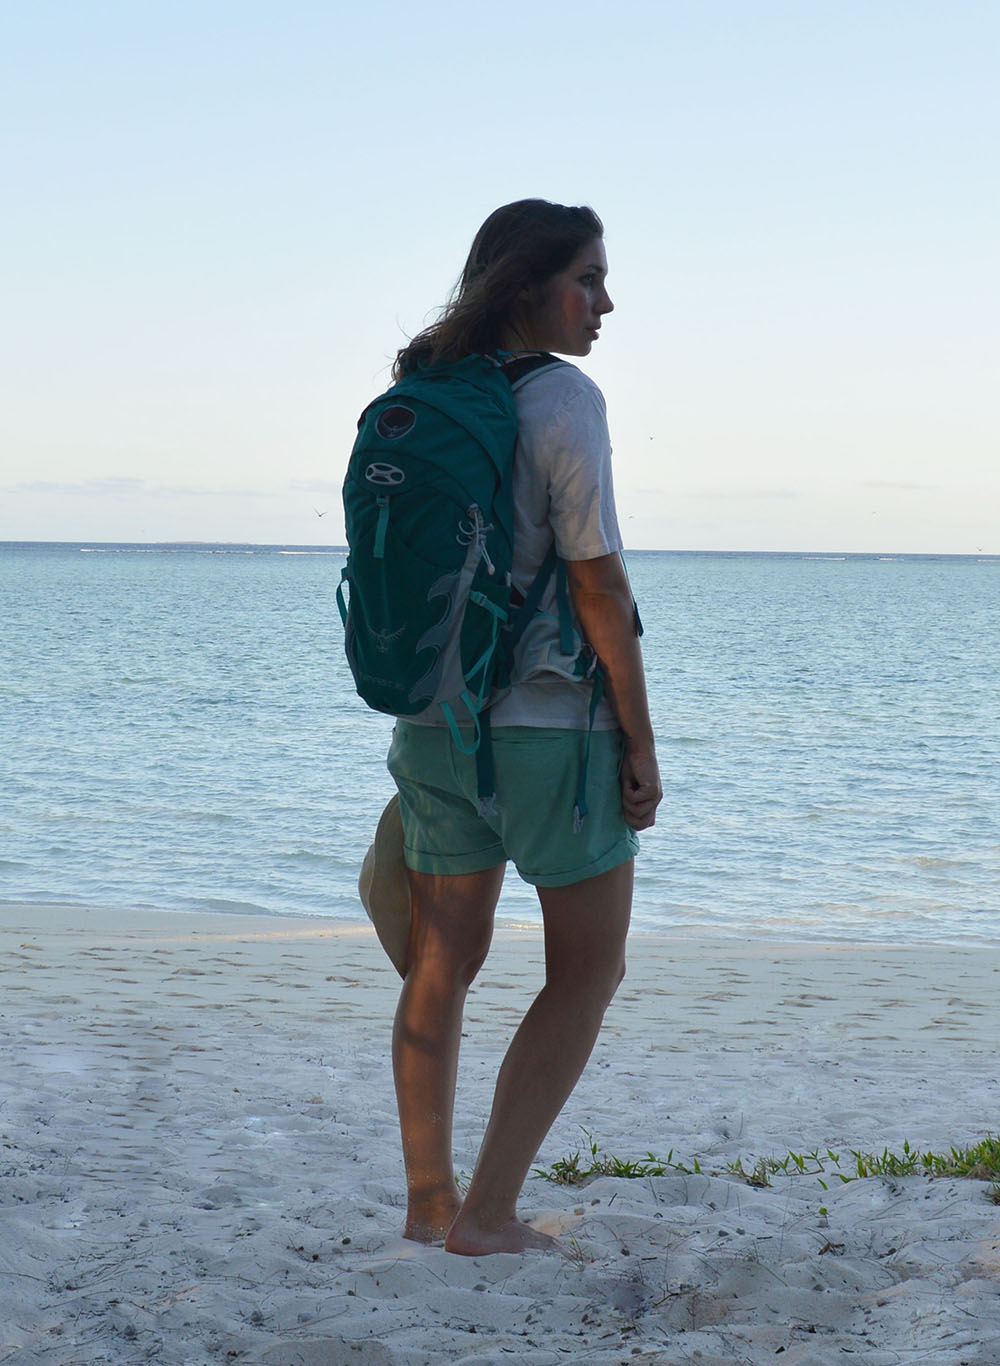 Osprey Tempest Talon review | Osprey 20 litre backpack rucksack review The Girl Outdoors